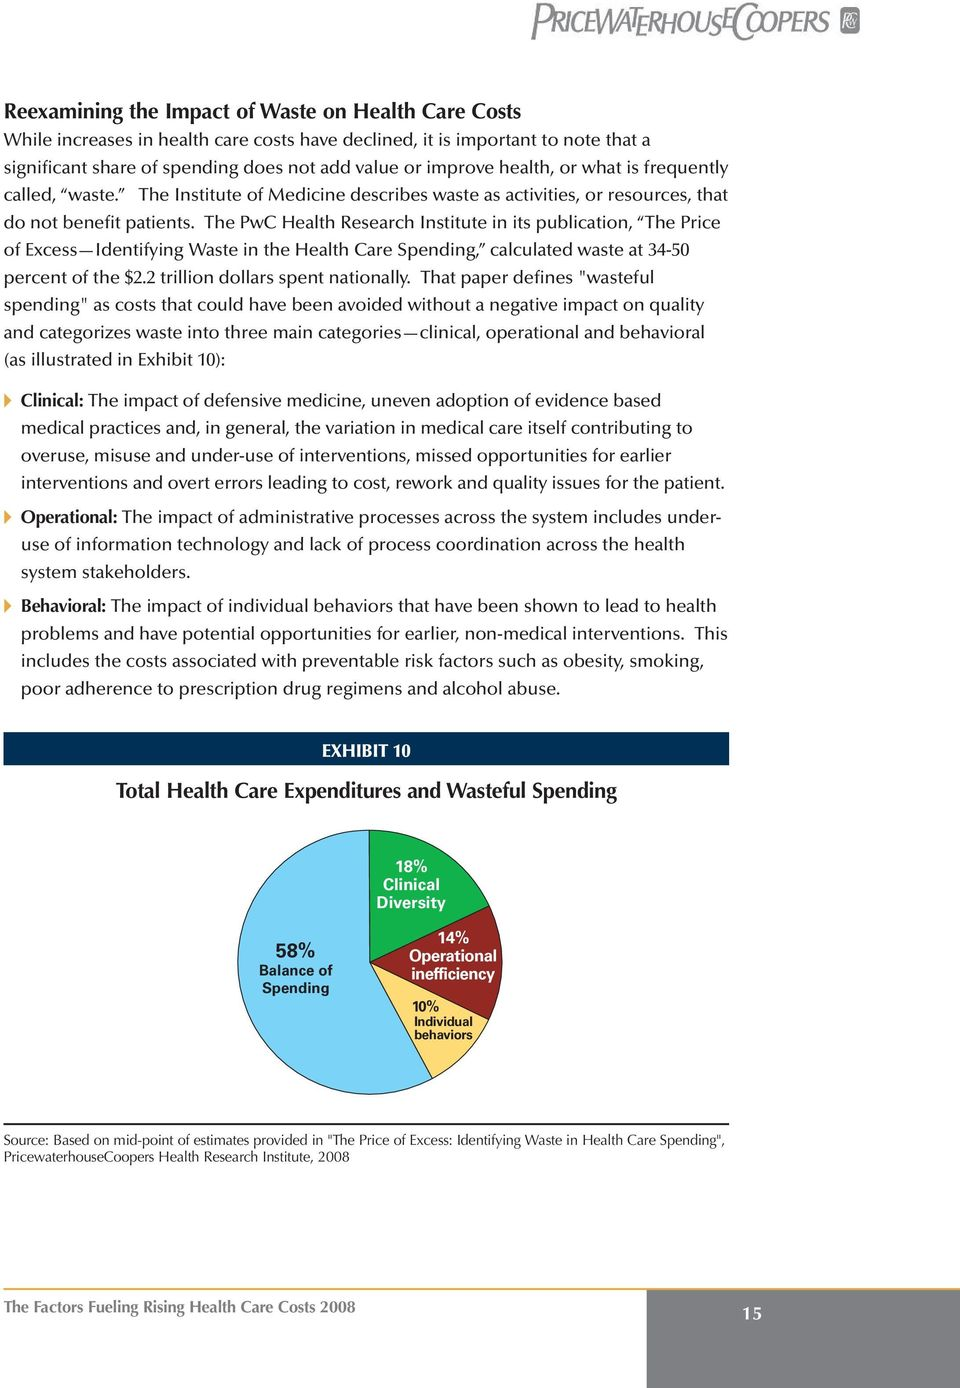 The PwC Health Research Institute in its publication, The Price of Excess Identifying Waste in the Health Care Spending, calculated waste at 34-50 percent of the $2.